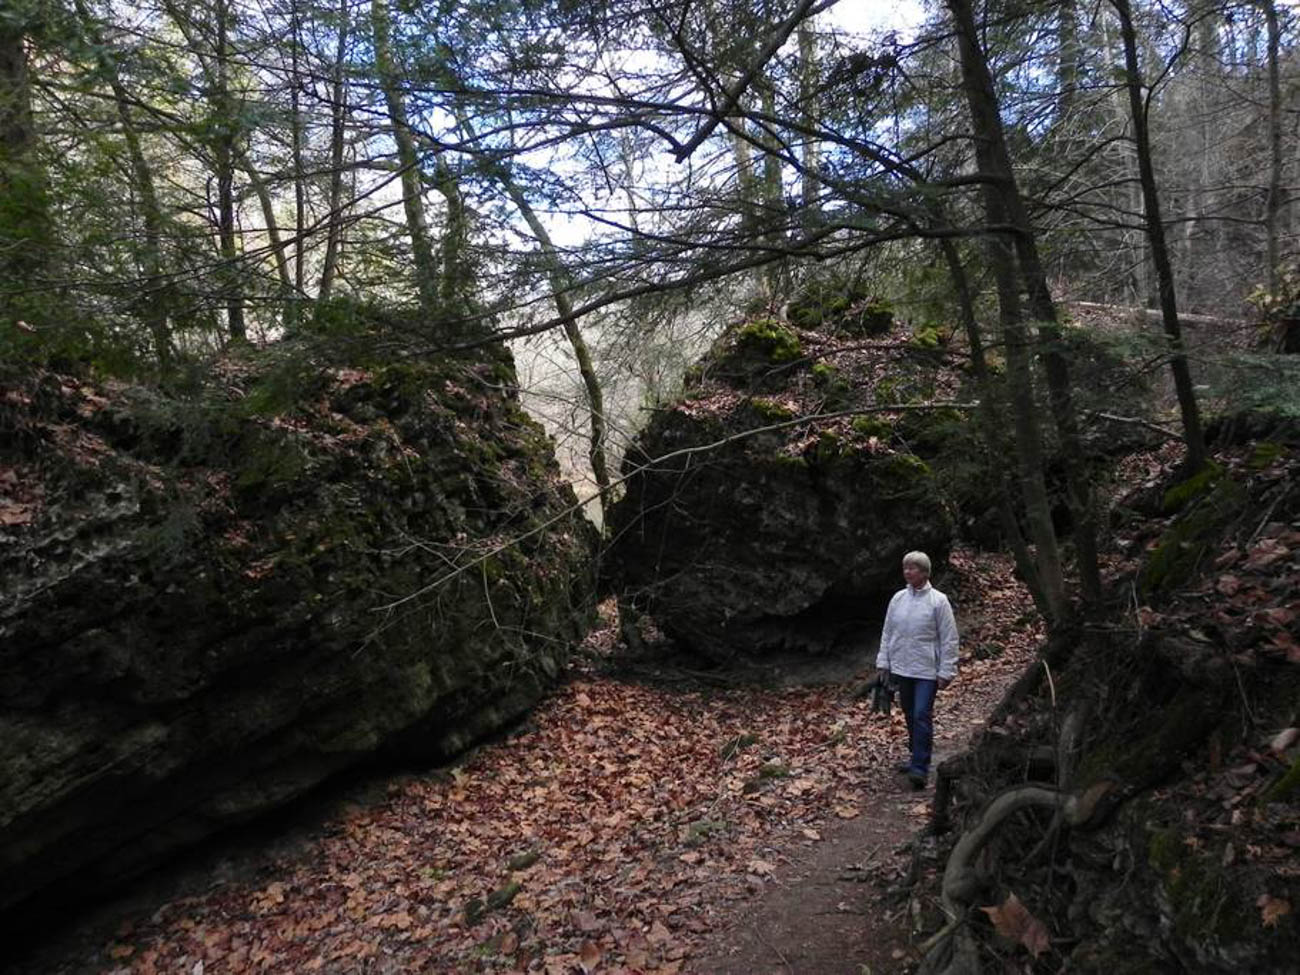 The major draw of the Earthstar Lodge, besides its interesting shape, is the easy access guests have to 18.5 miles of trails in the Highlands Nature Sanctuary. Hike through the imposing Rocky Fork Gorge and visit the Marble Cave and the Three Sisters before retreating into your own cozy dome to recharge for the night. Best of all, every stay at the Earthstar Lodge supports the Arc of Appalachia—a non-profit dedicated to saving Ohio's wildlands—so you can enjoy the land today while helping protect it for tomorrow. A dome house has 1 bedroom, 1 bath, and can sleep two guests. It takes an hour and half to get there from Cincinnati. / Image courtesy of Arc of Appalachia // Published: 5.21.19